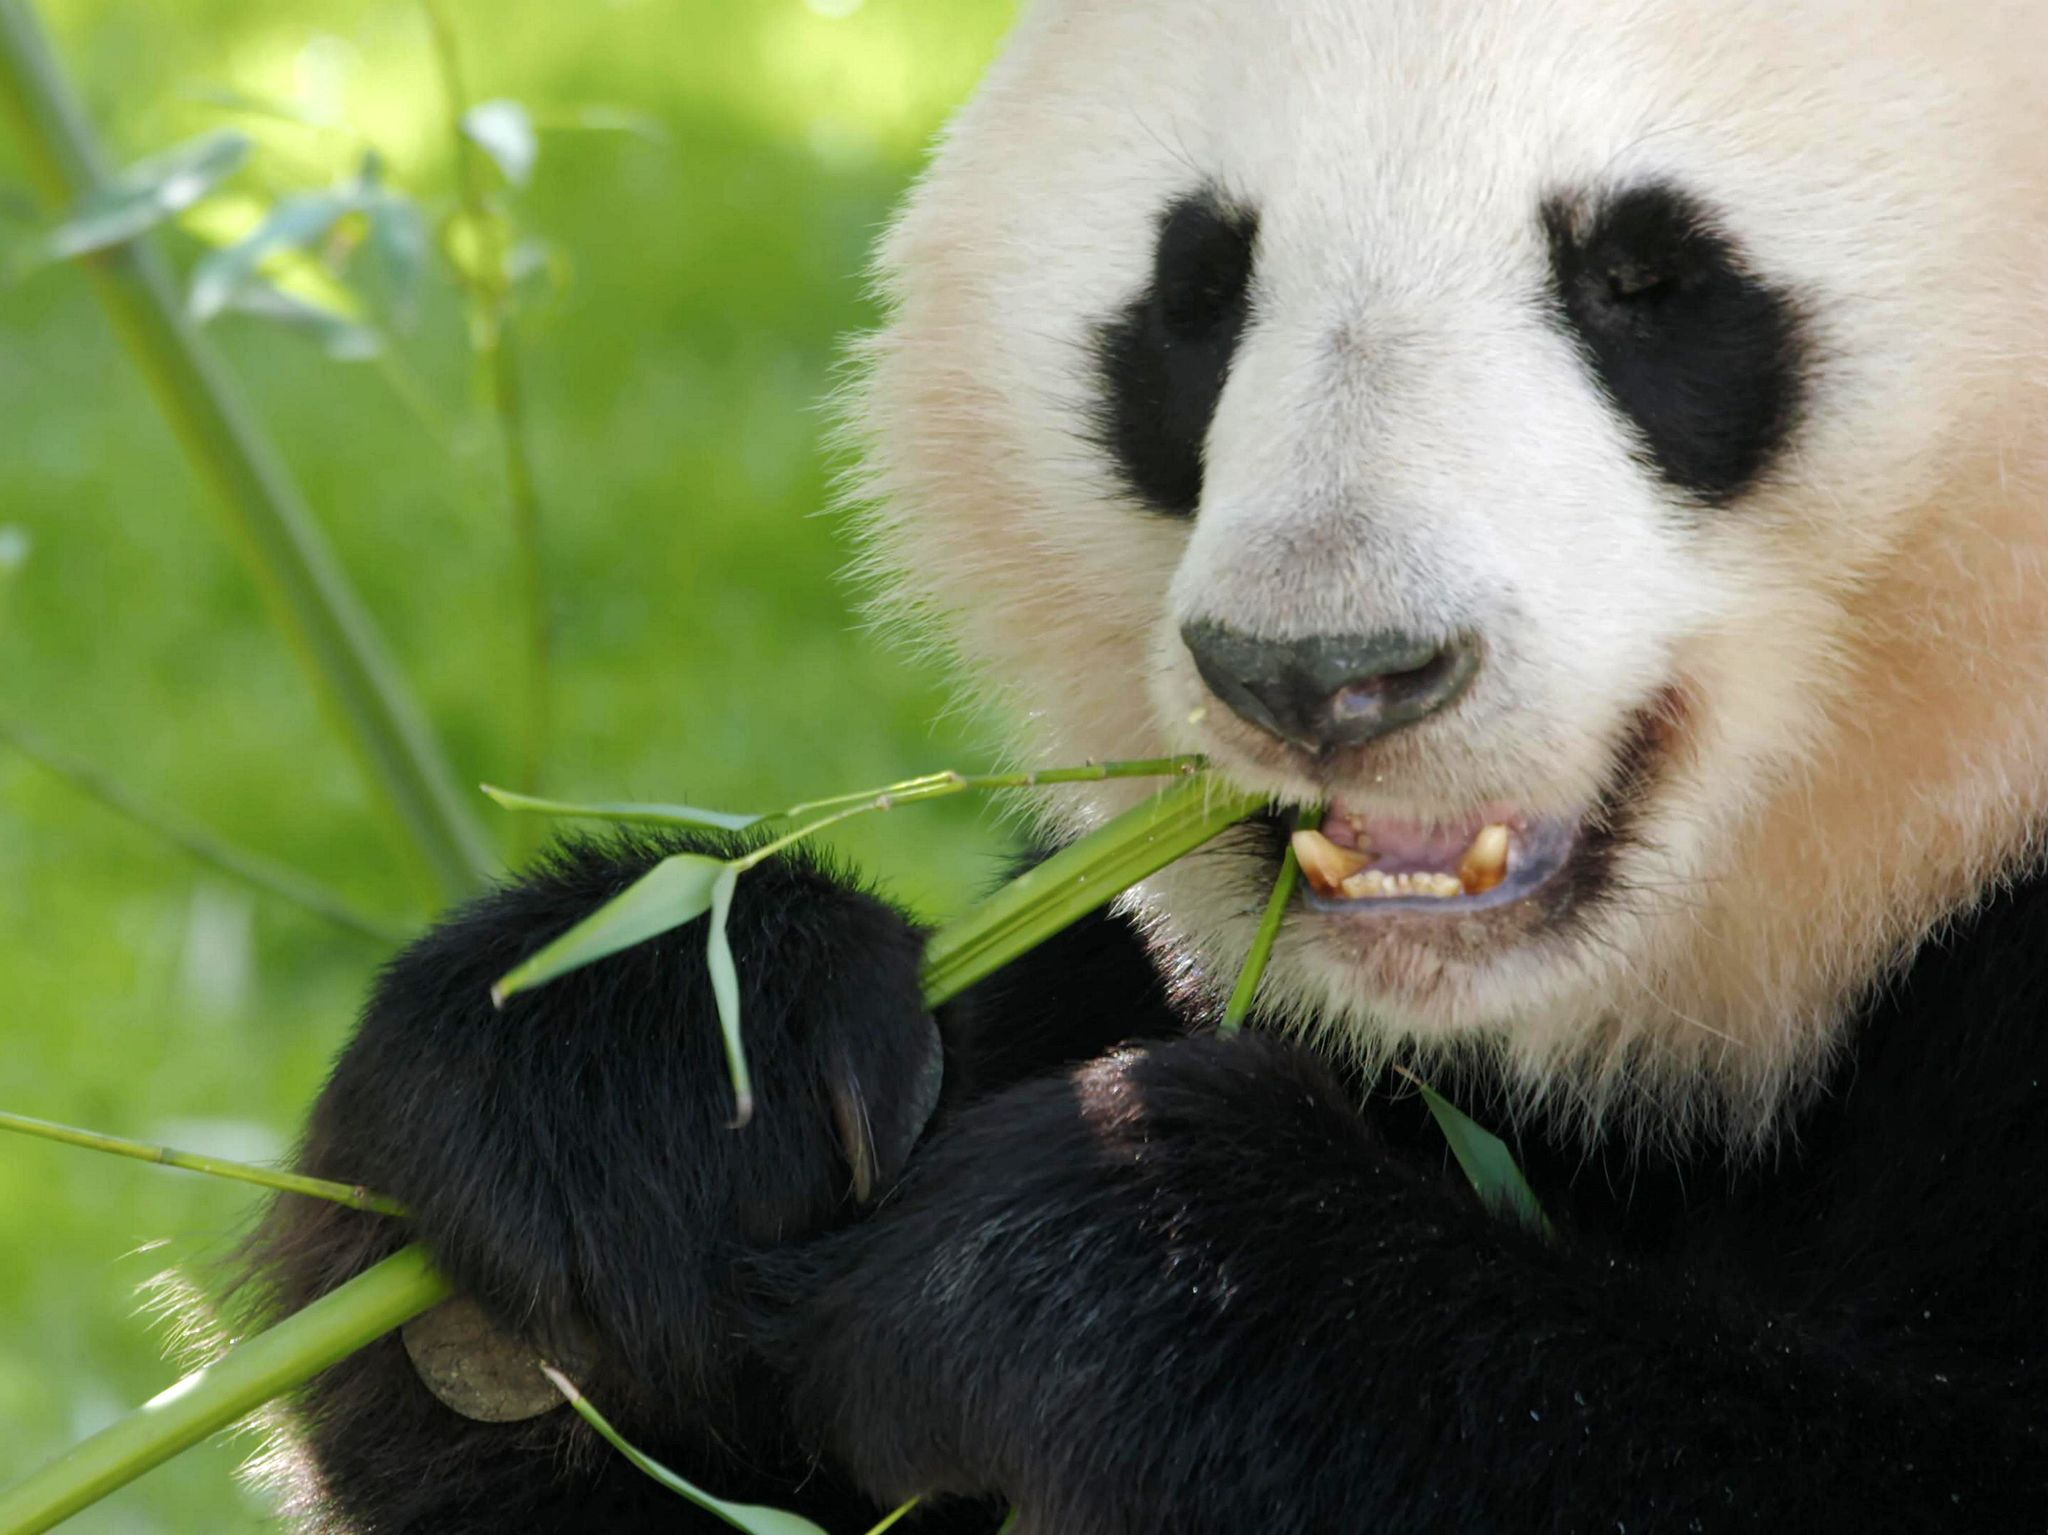 A closeup of a giant panda munching on some bamboo. This image is from Wild Hunters. [Photo of the day - می 2019]